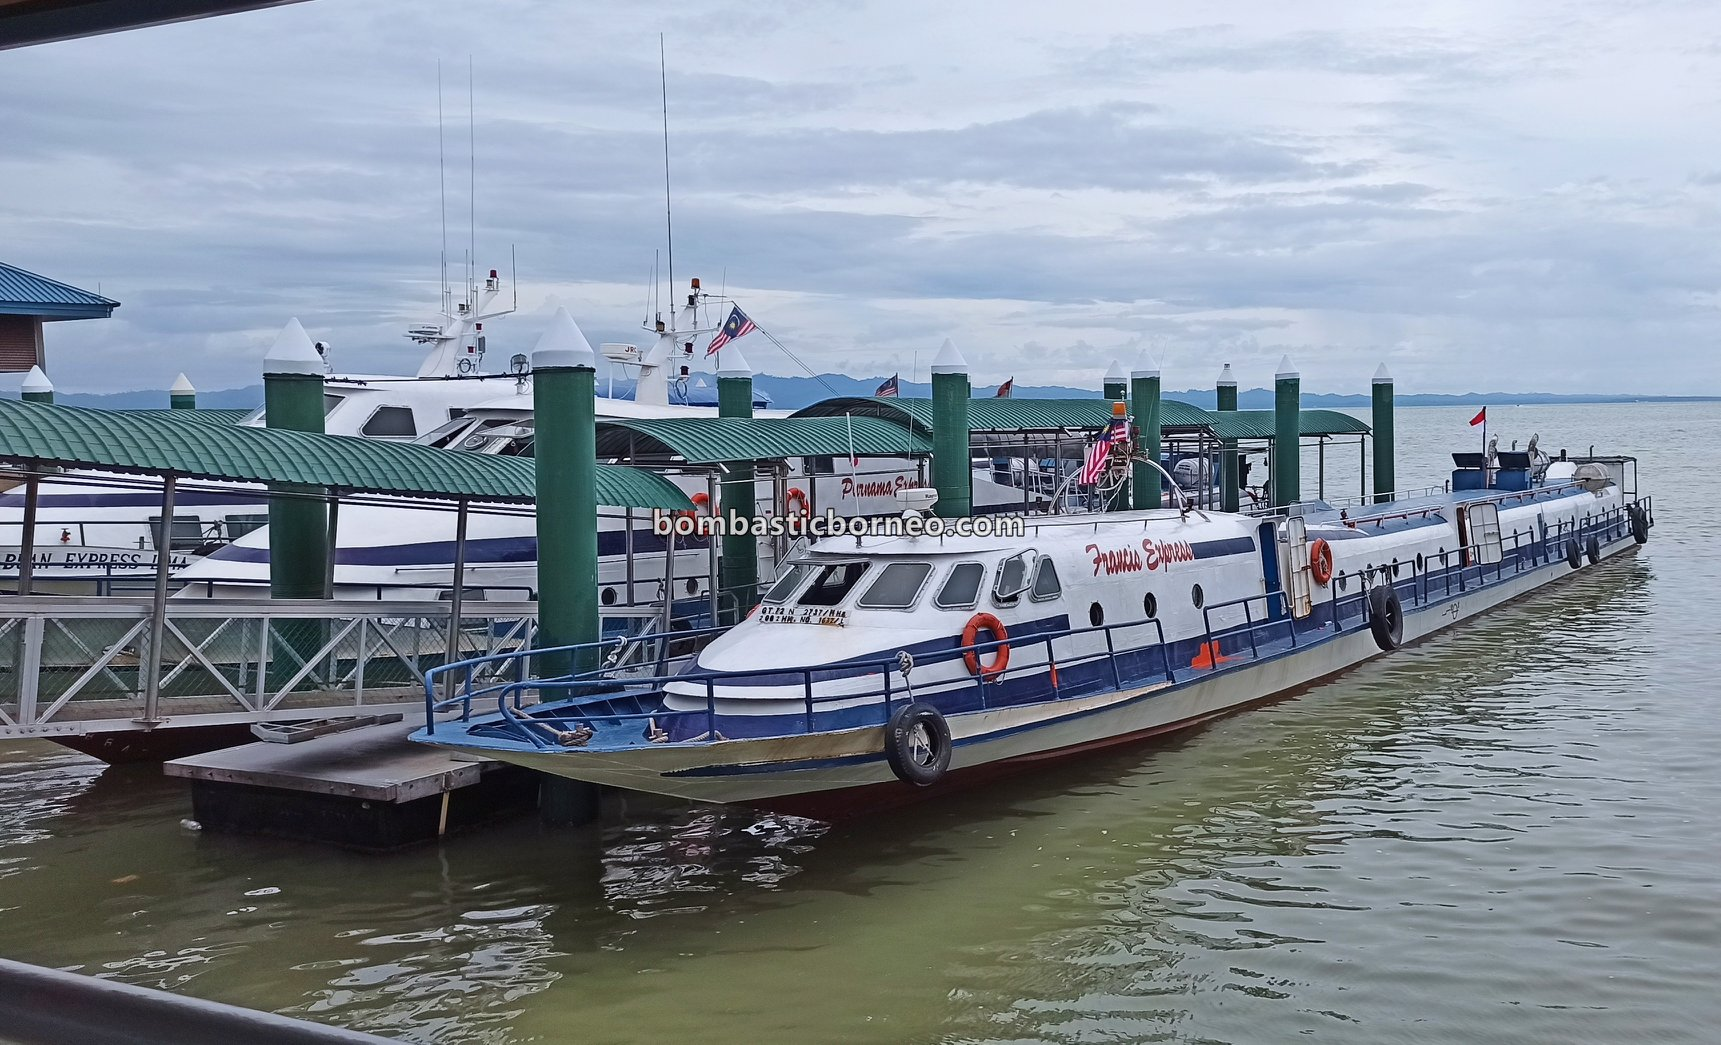 Indonesia, Ferry port, Ferry terminal, backpackers, destination, exploration, Pekan, town, Malaysia, Sabah, Tawau, Tourism, tourist attraction, Travel Guide, Trans Borneo,